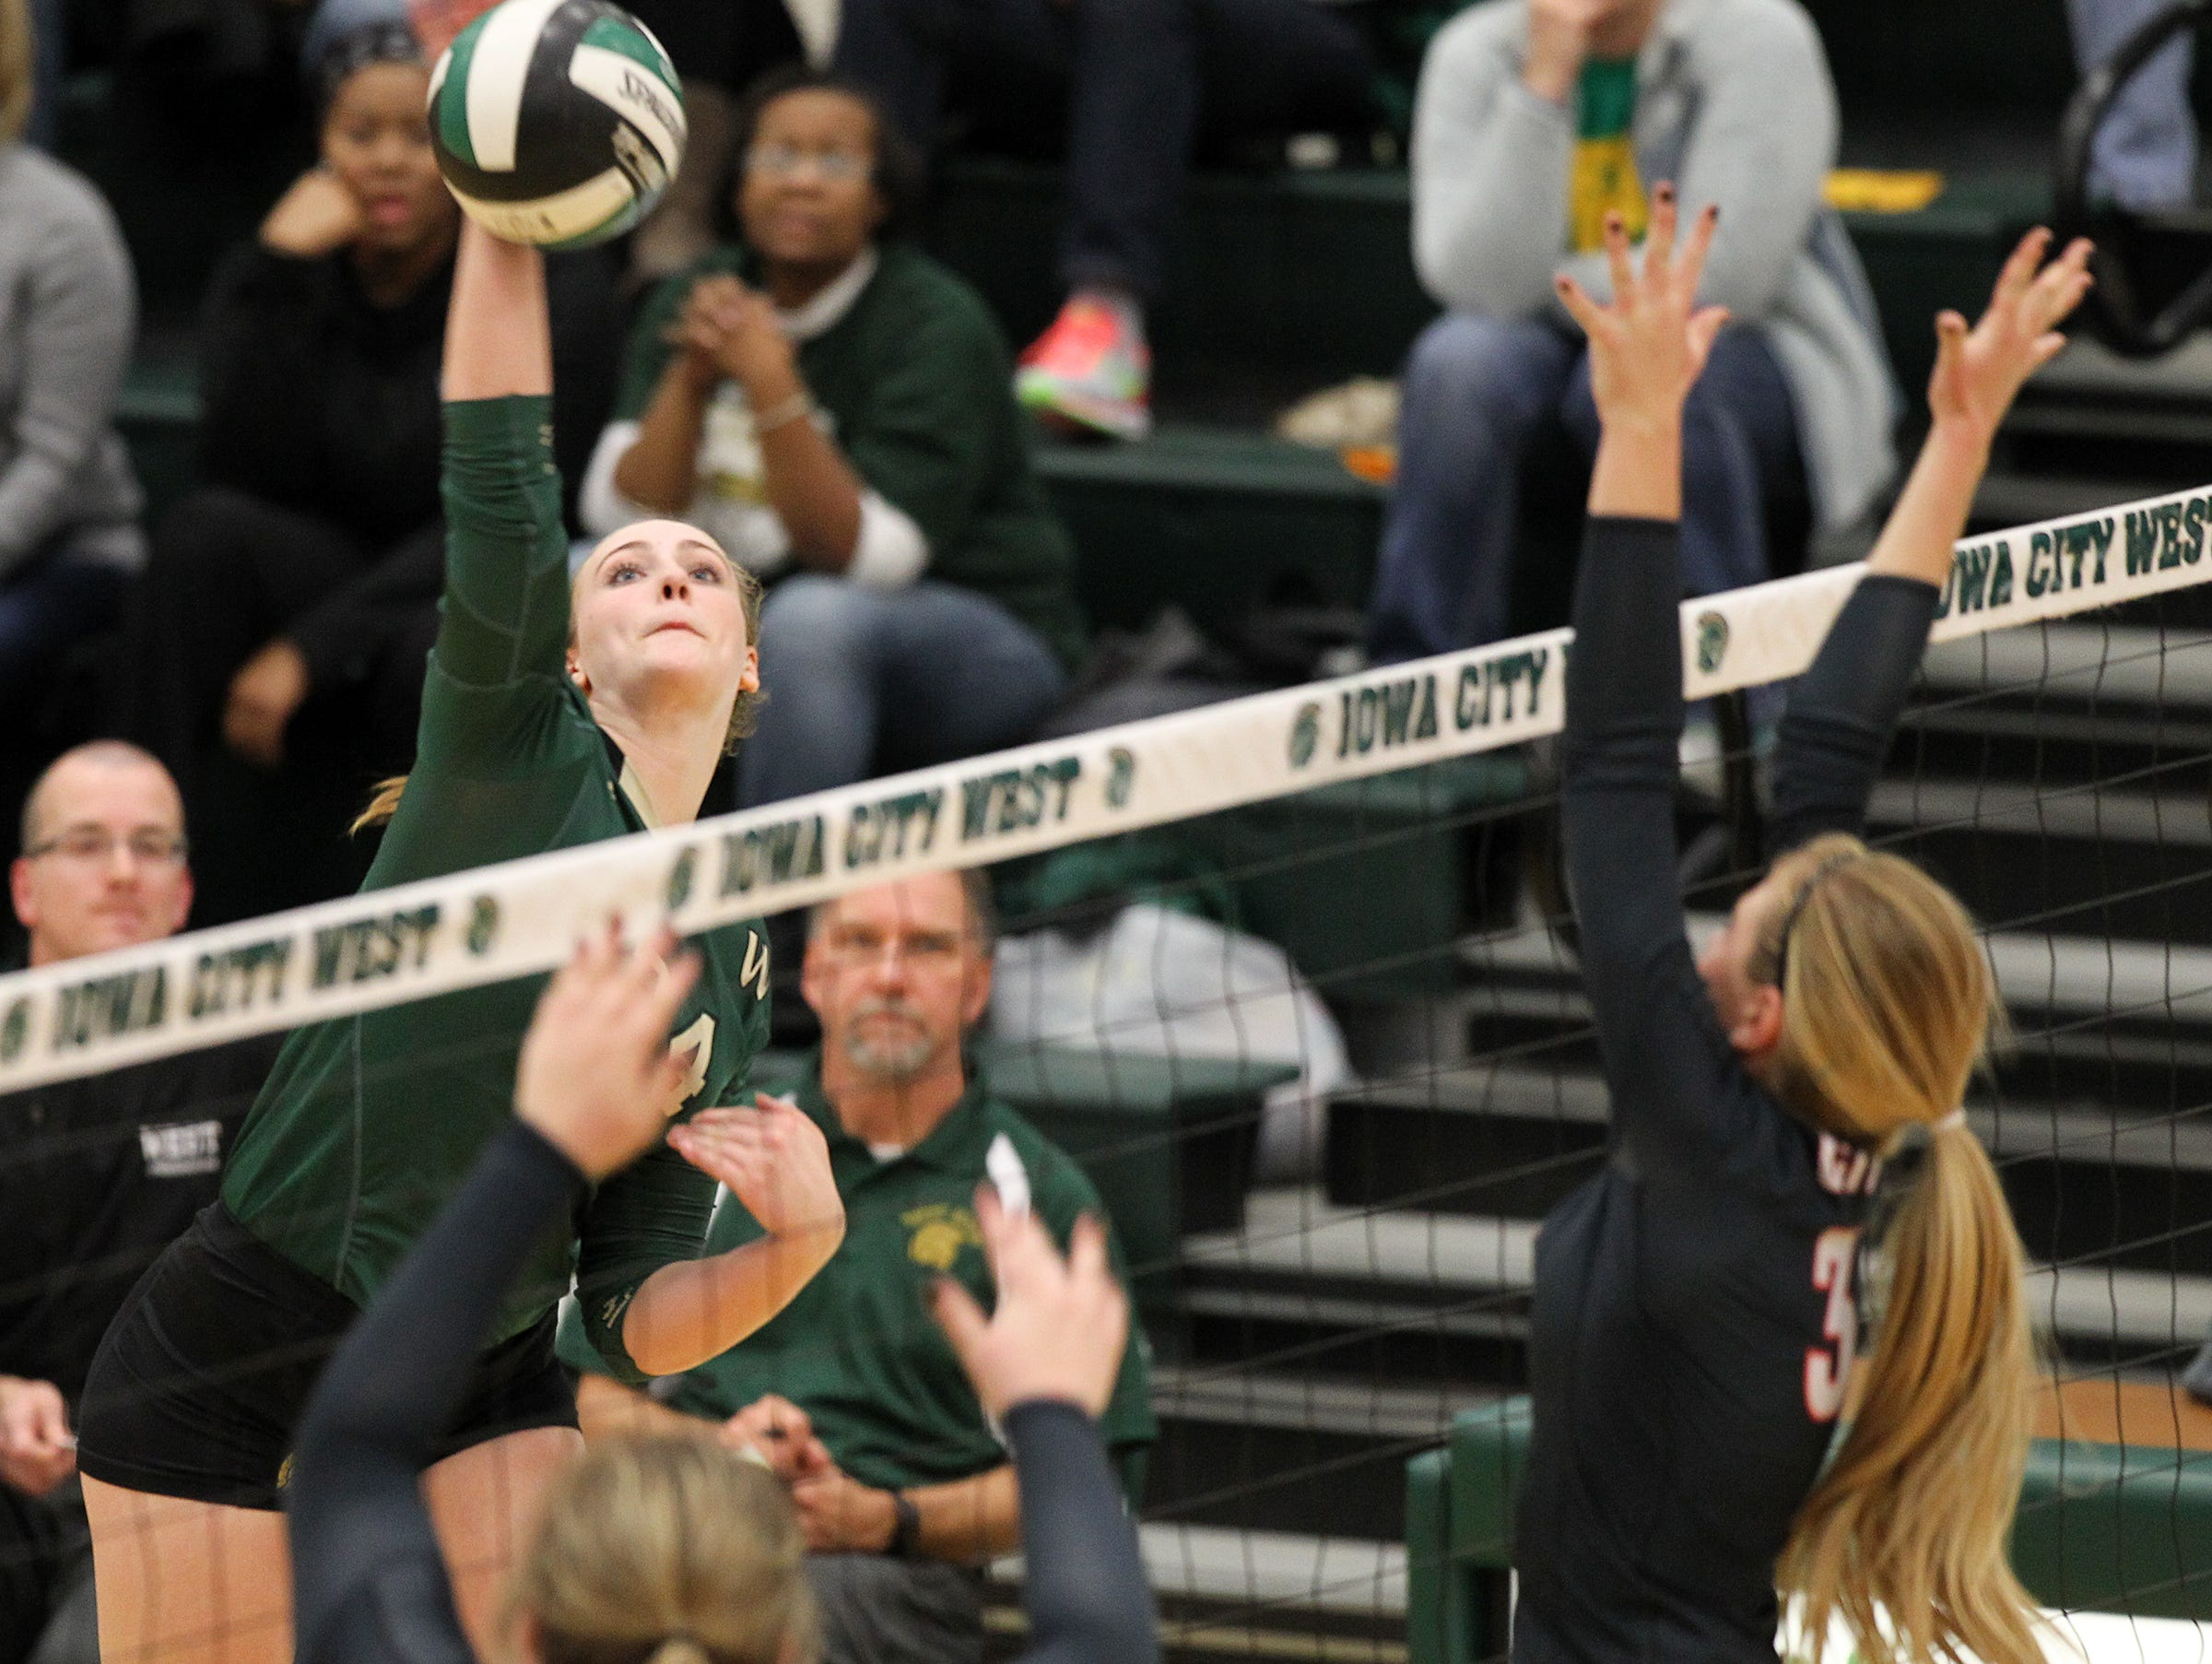 West High's Chandler Haight goes for a kill during the Women of Troy's regional semifinal game against City High at West High on Thursday, Oct. 29, 2015.